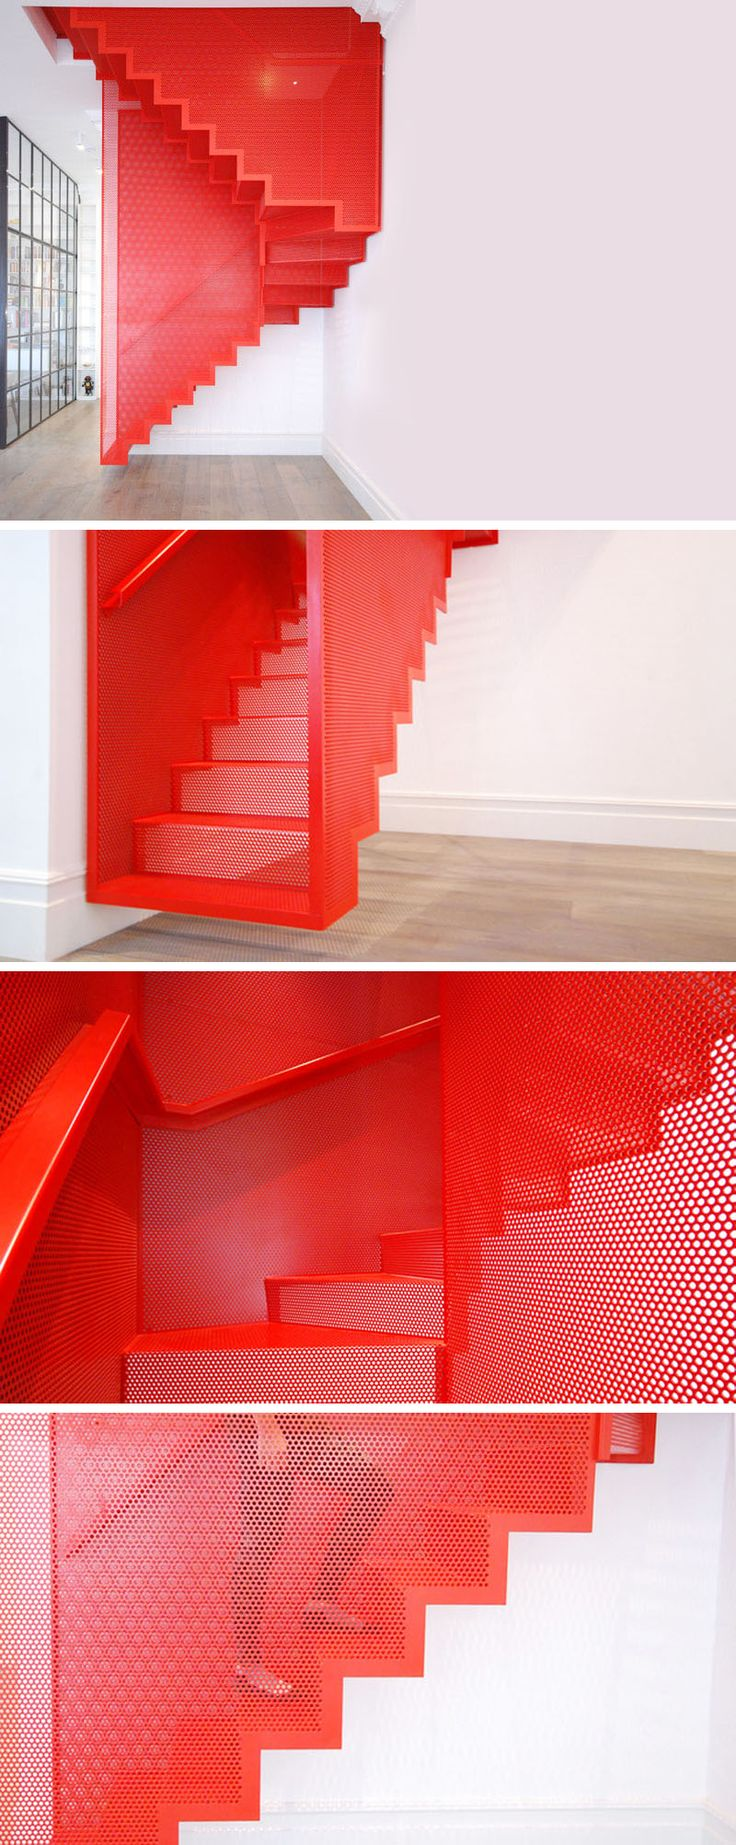 {wow} Perforated Steel Suspended Staircase by Diapo, Inspired from installation by Do Ho Suh at the Tate Modern Gallery